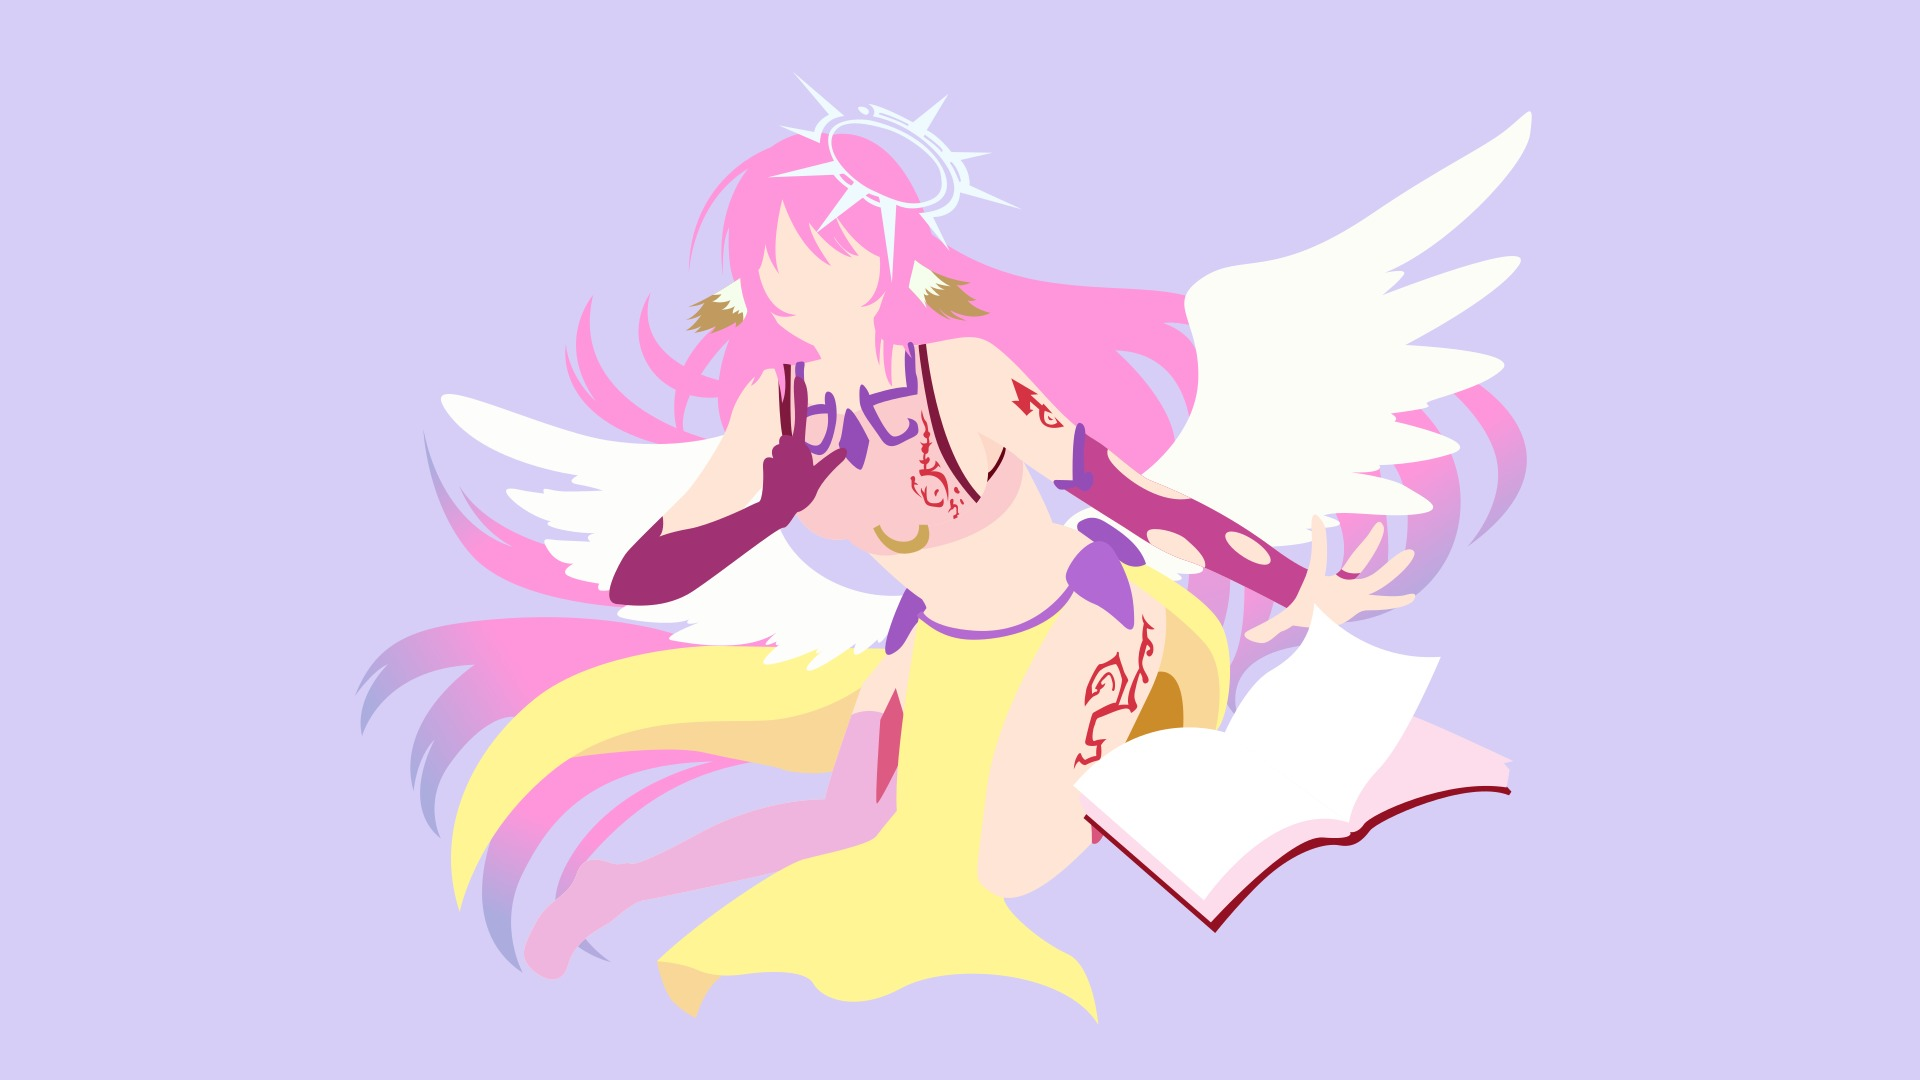 Download Wallpaper From Anime No Game No Life With Tags Jibril